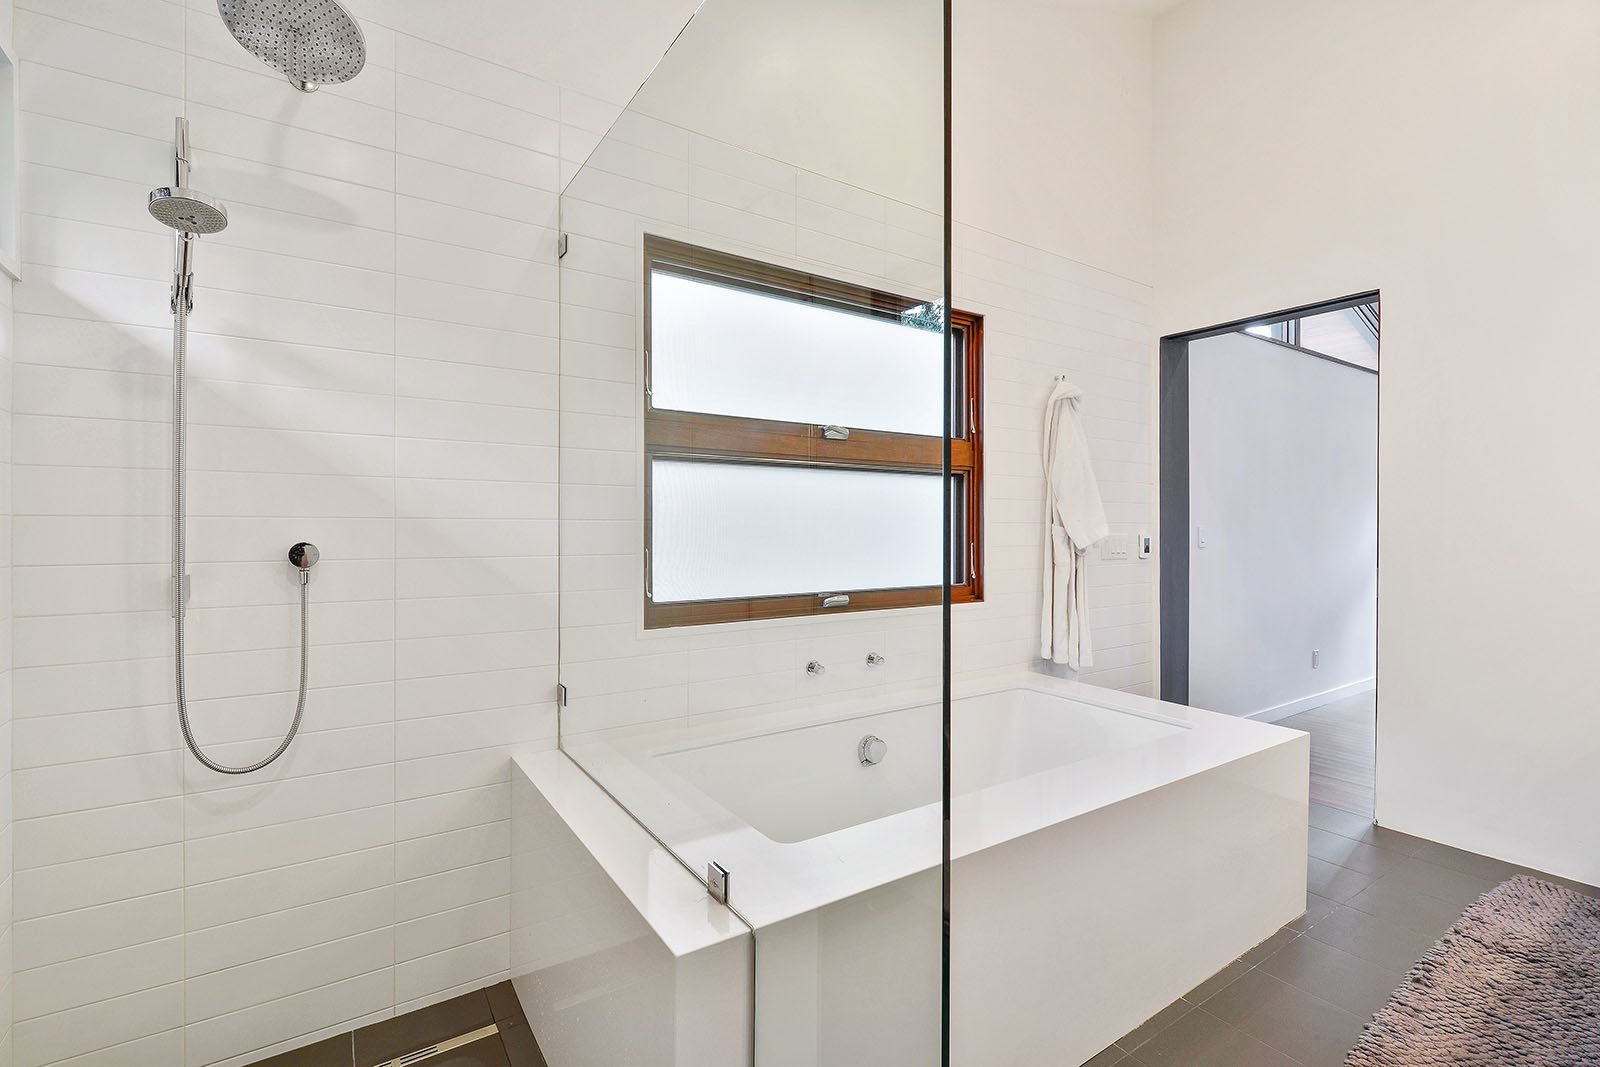 Bath Room, Ceramic Tile Floor, Open Shower, Engineered Quartz Counter, Undermount Tub, Ceiling Lighting, Ceramic Tile Wall, and Subway Tile Wall Bath  Portola Valley by patrick perez/designpad architecture